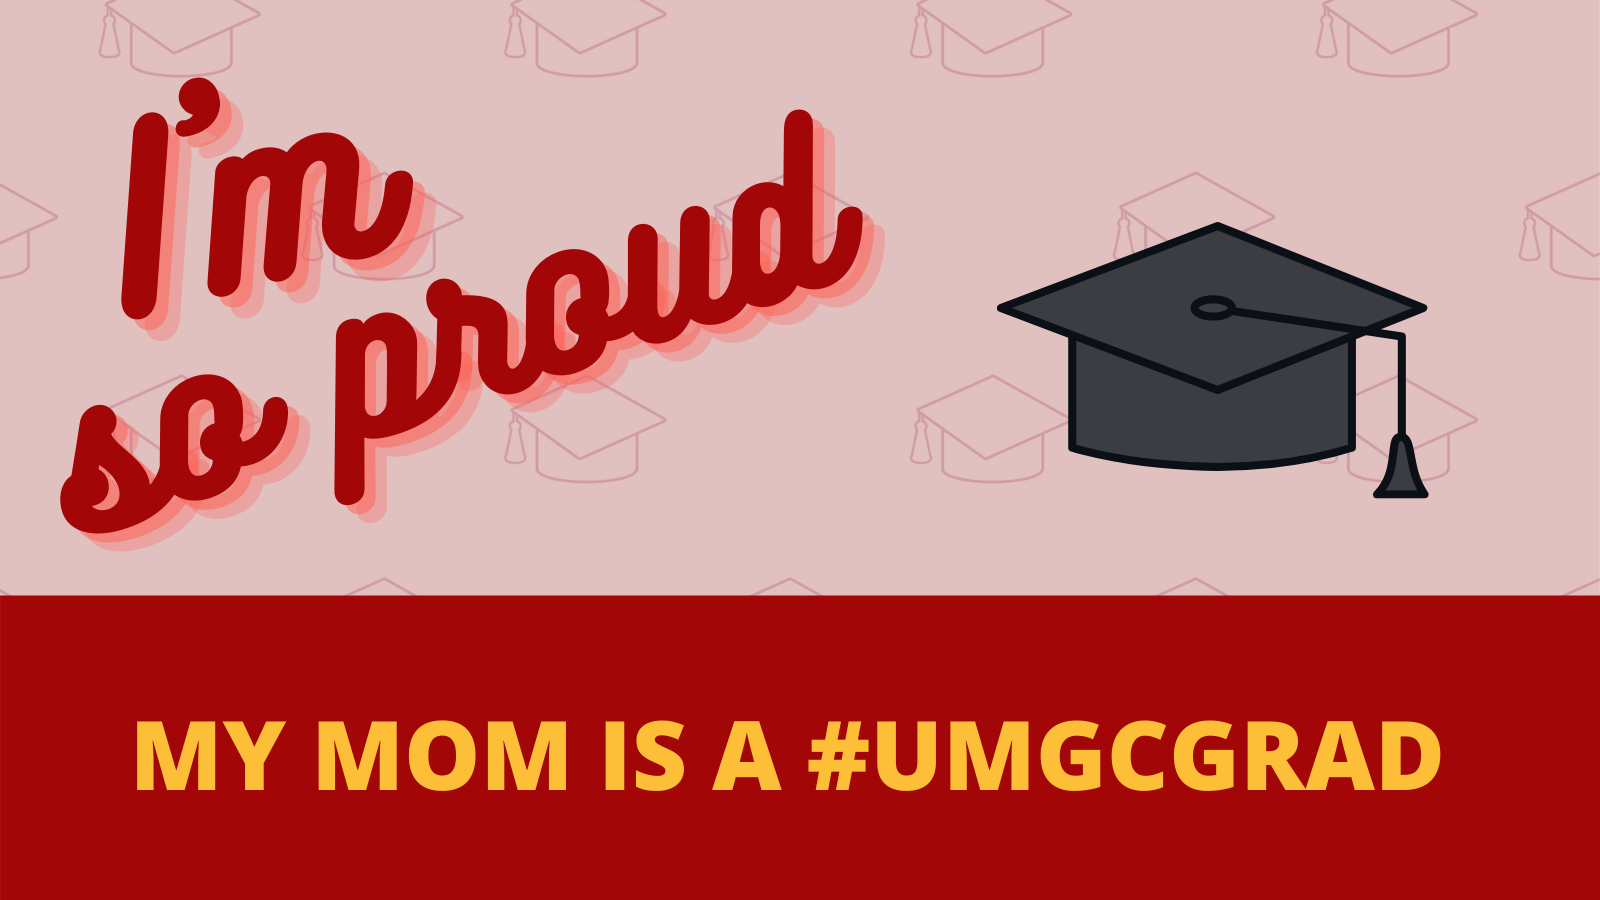 I'm so proud; My mom is a #UMGCGRAD: Social media toolkit image 2 for Twitter feed posts